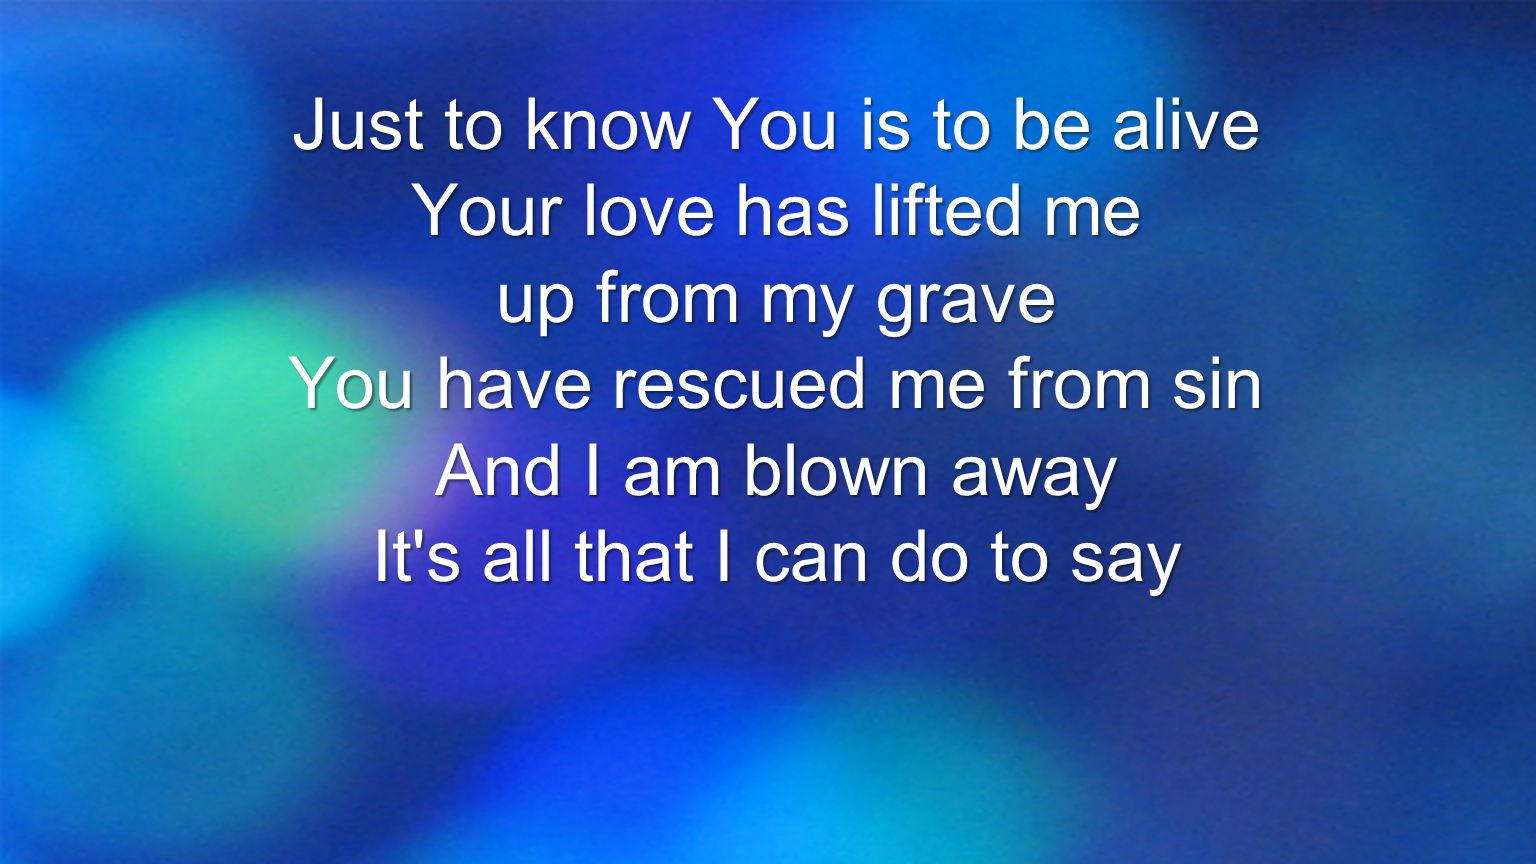 Just to know You is to be alive Your love has lifted me up from my grave You have rescued me from sin And I am blown away It's all that I can do to sa